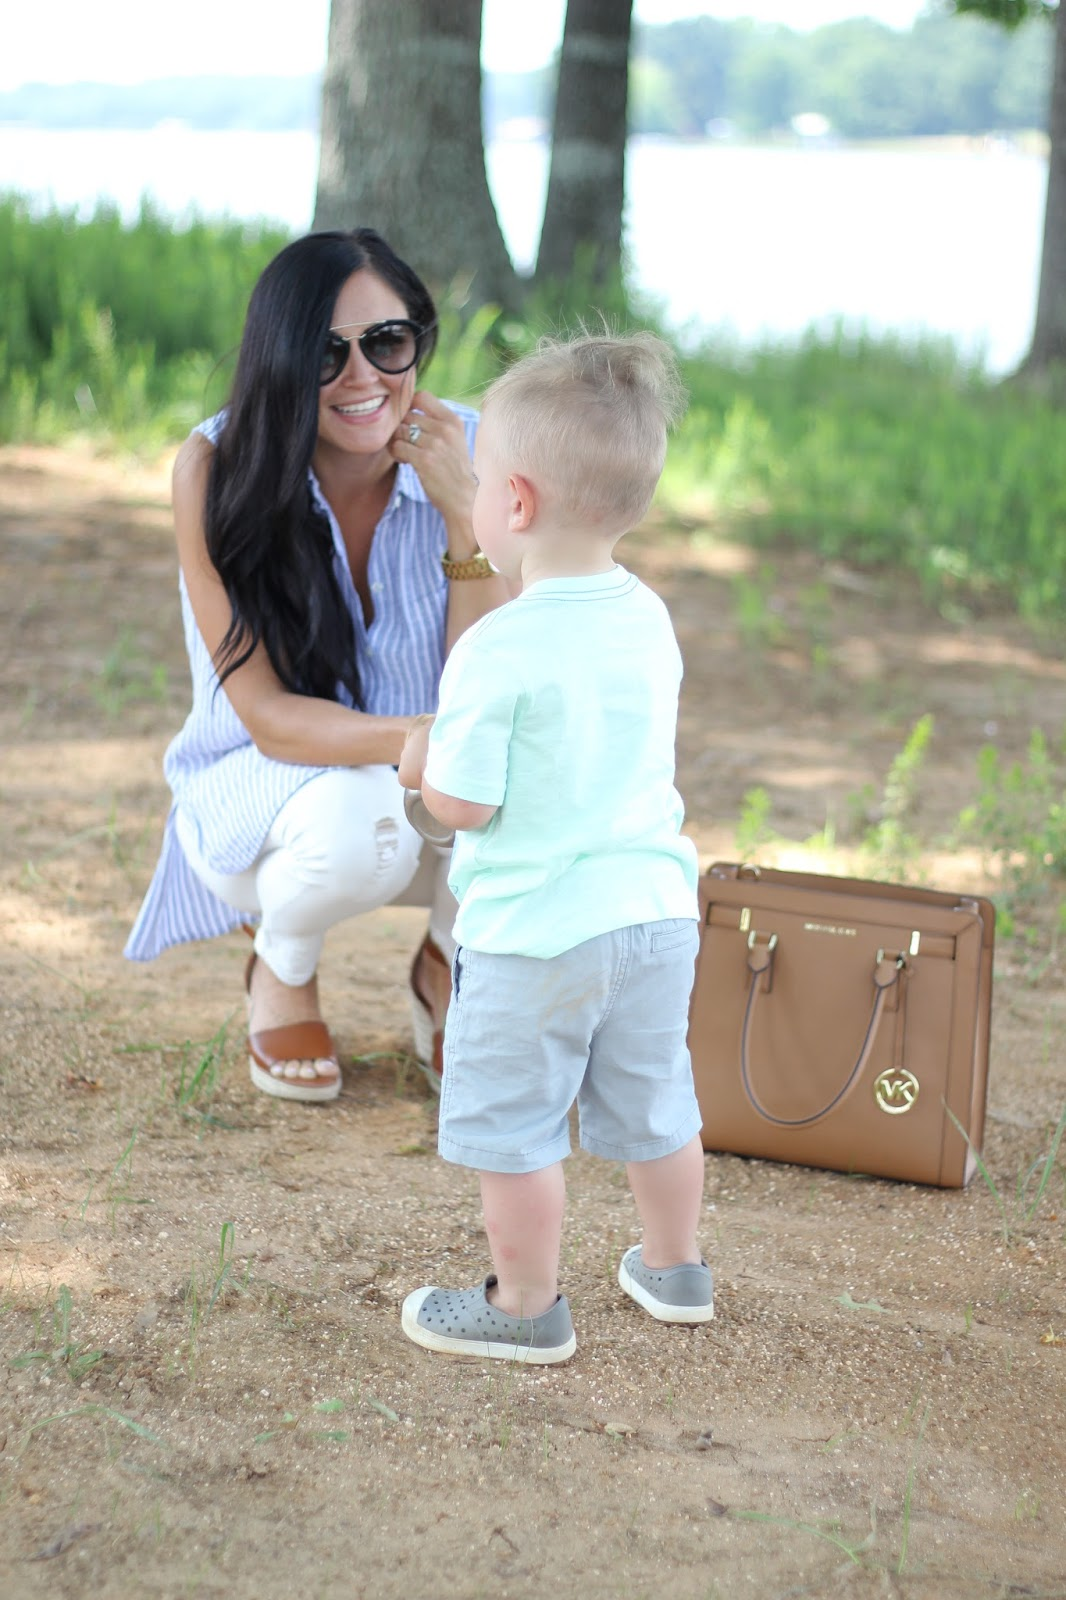 Stilettos and Diapers, Diaper bag to purse transition, Boymom, Michael Kors